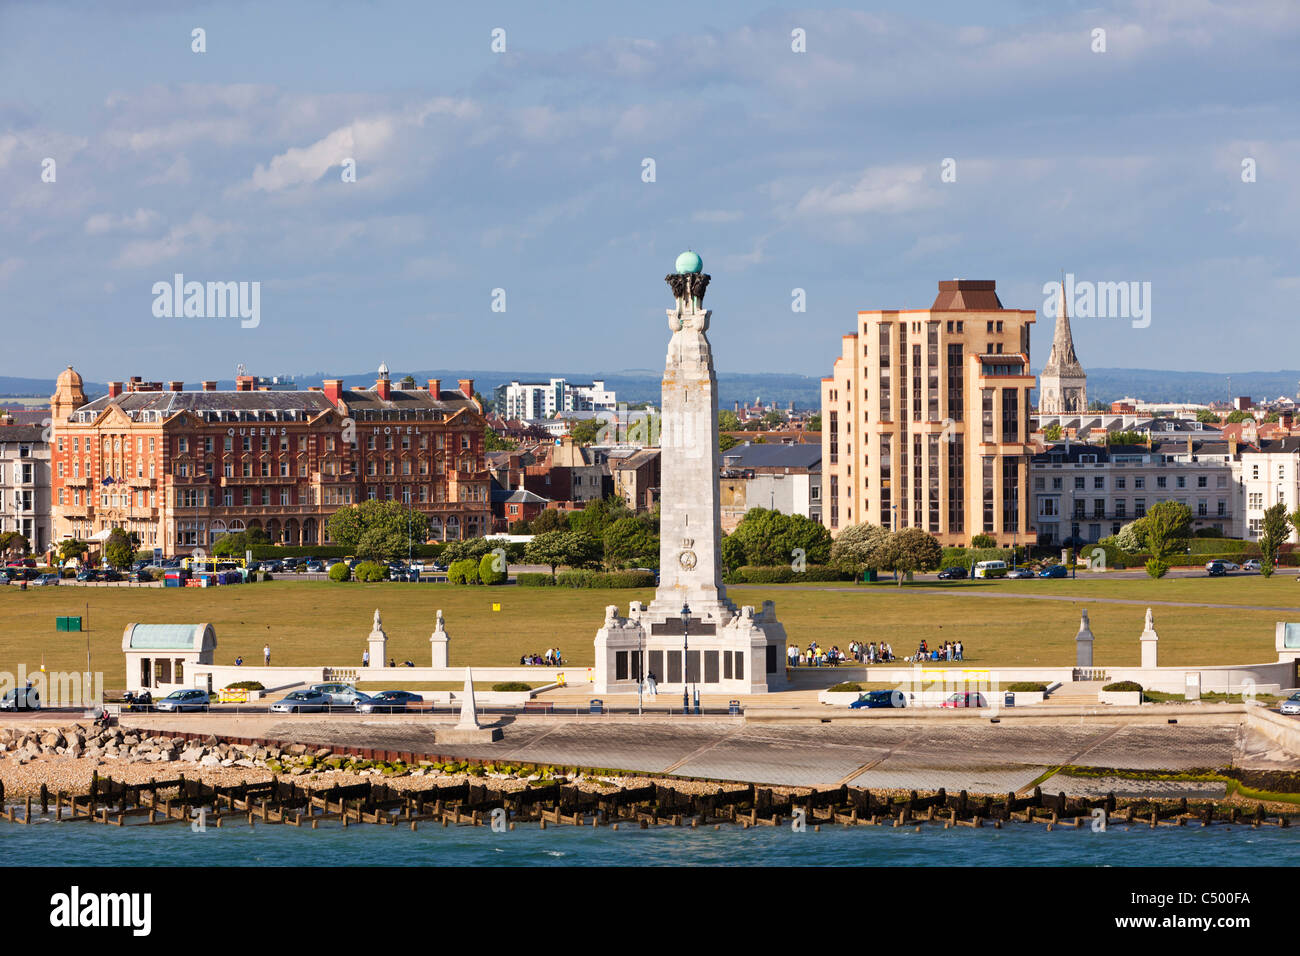 Portsmouth Naval Memorial on Southsea Common, Portsmouth, Hampshire England, UK Stock Photo